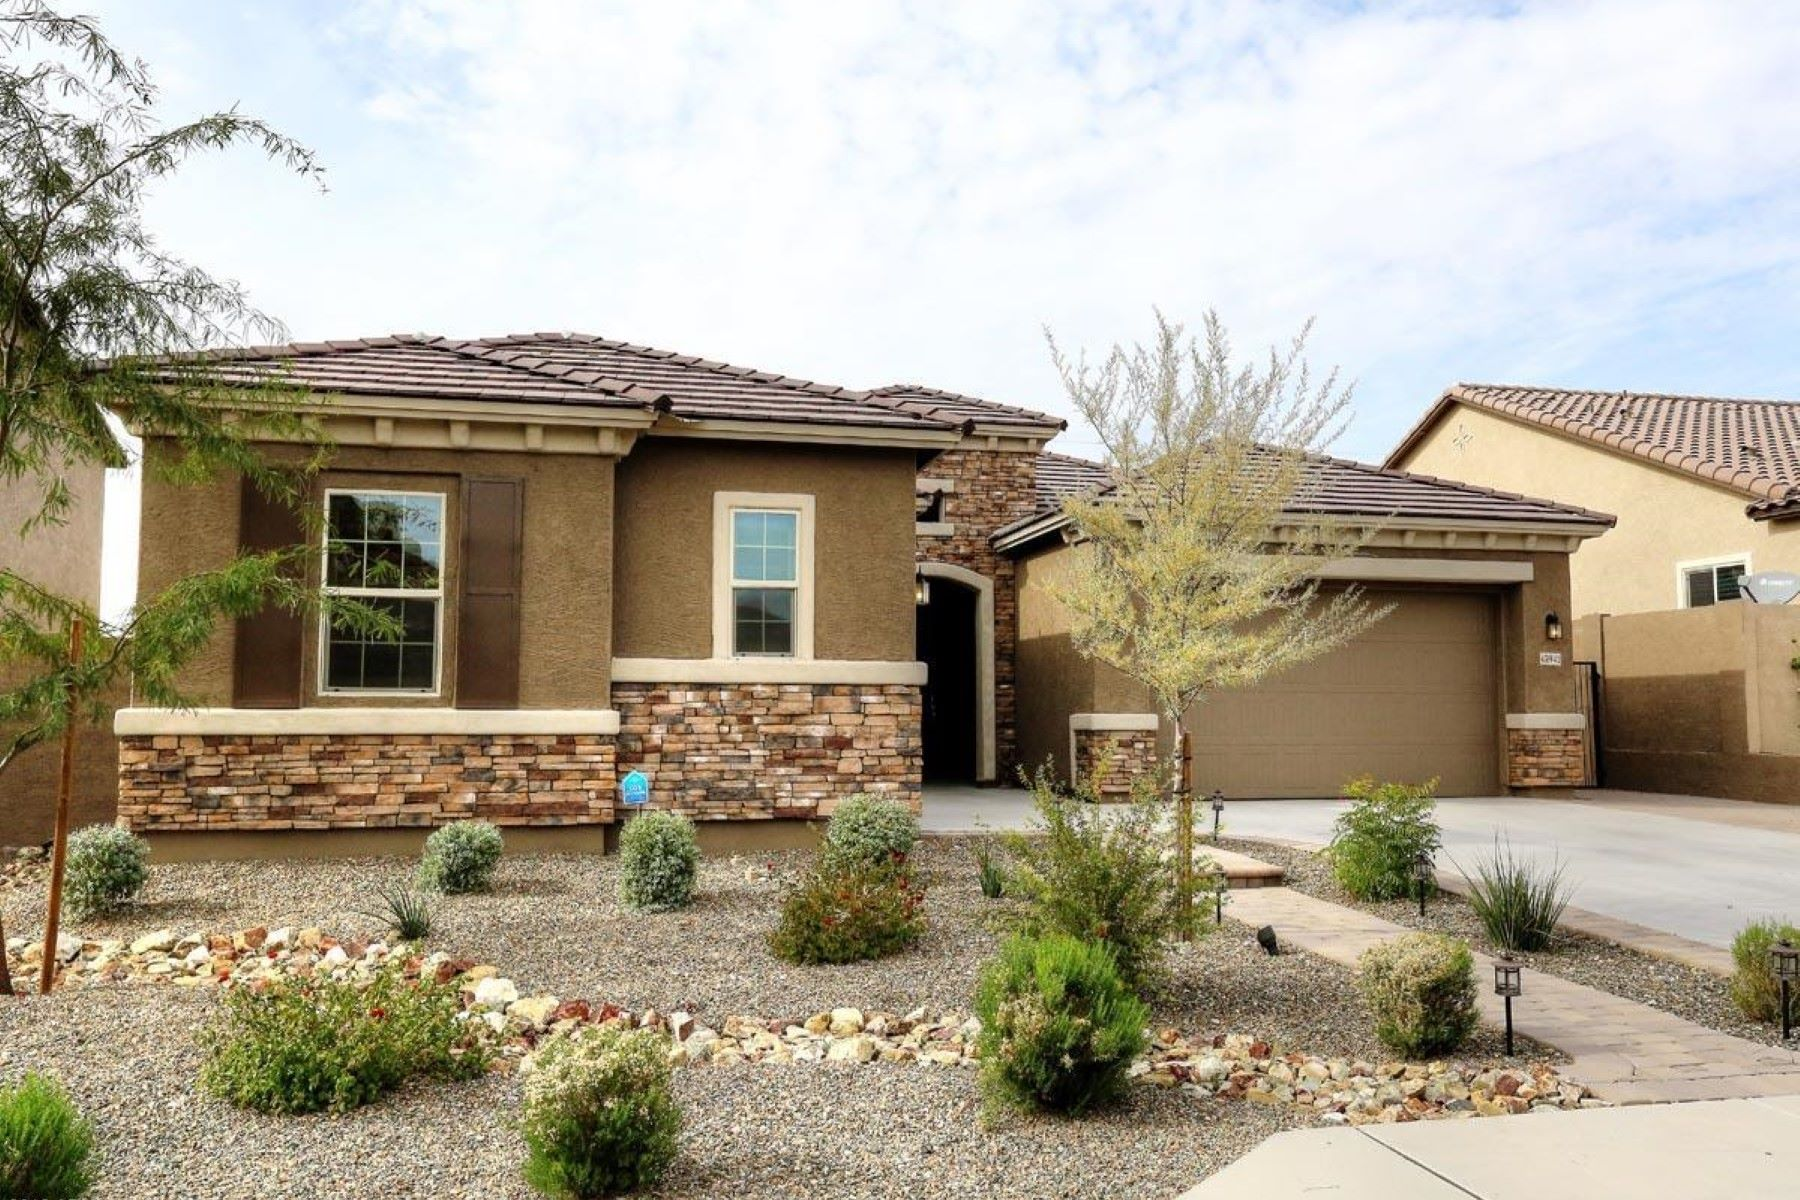 Single Family Homes for Active at Arroyo Norte 43942 N Hudson Trail New River, Arizona 85087 United States